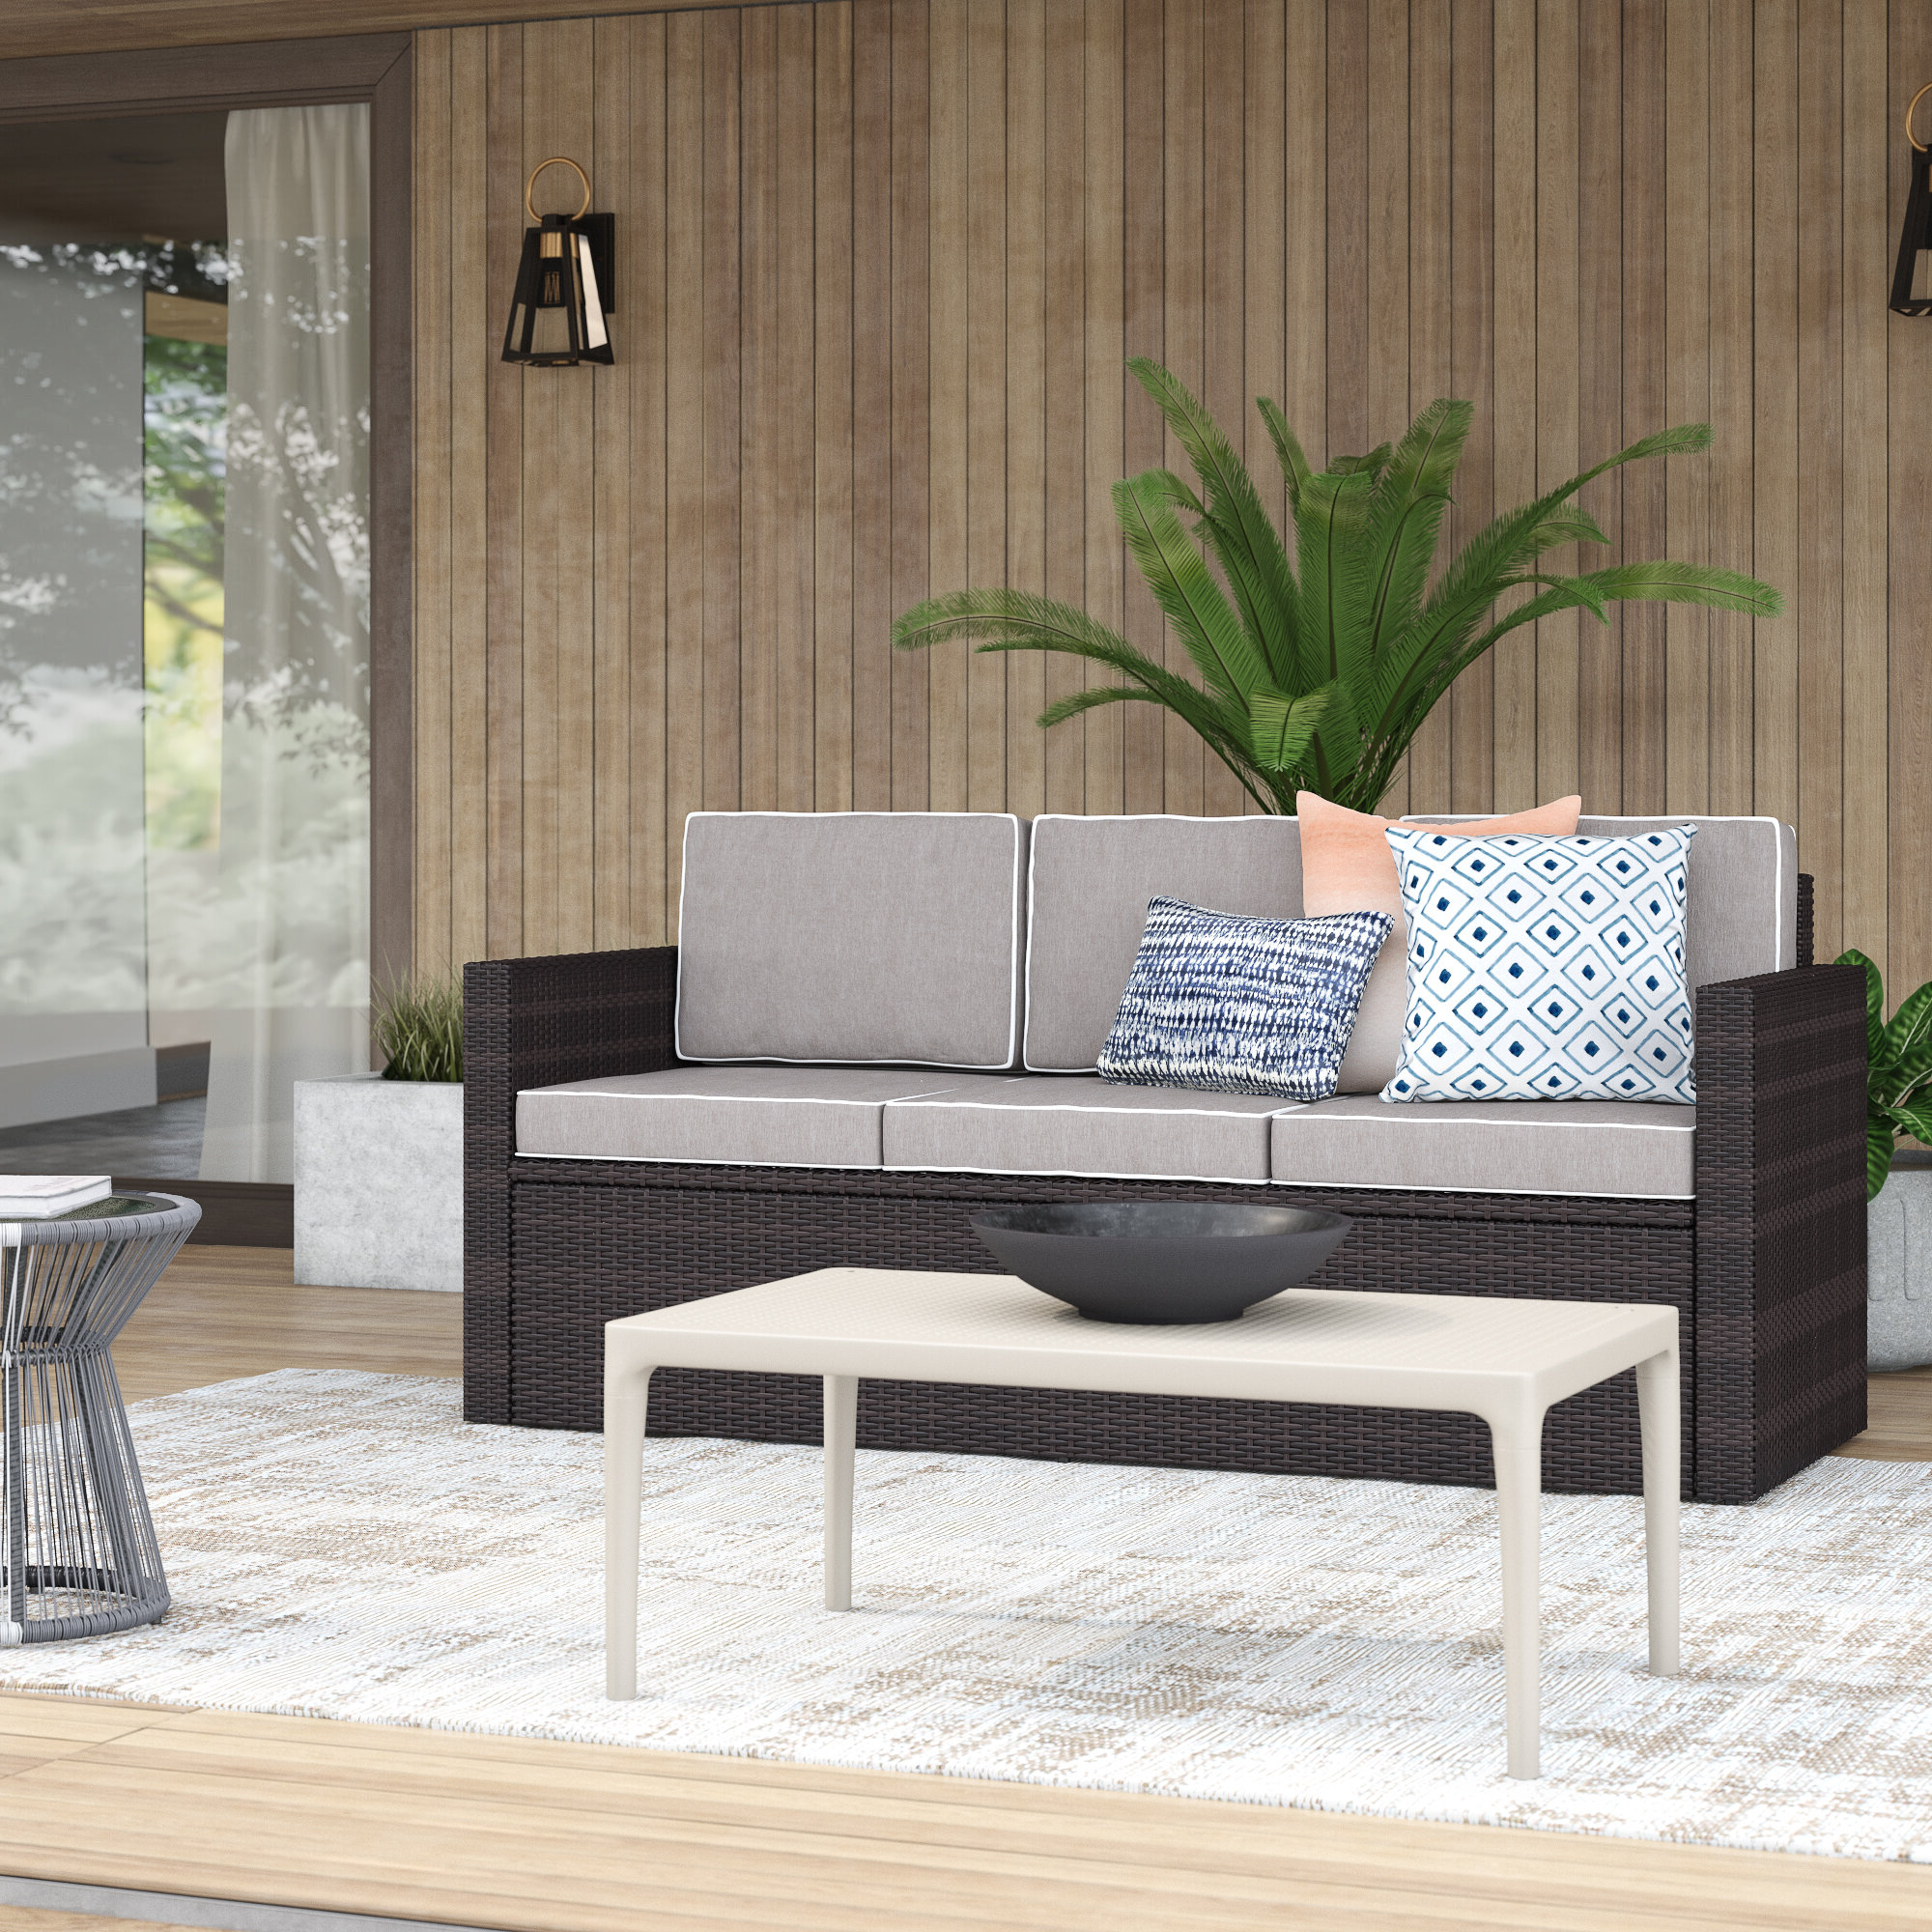 Belton Patio Sofa With Cushions Intended For Popular Yoselin Patio Sofas With Cushions (Gallery 5 of 20)